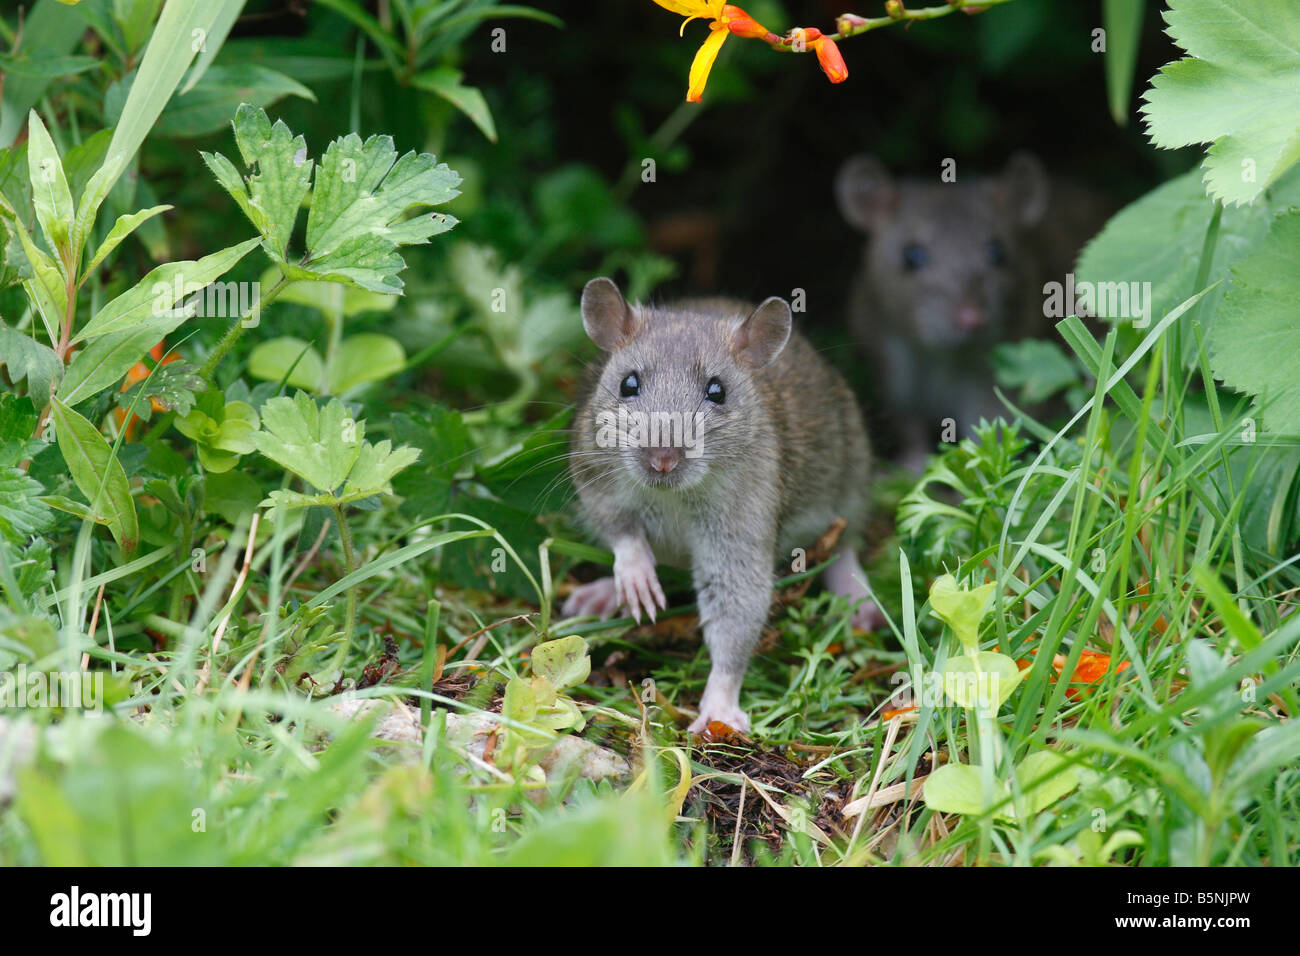 BROWN RAT Rattus norvegicus YOUNGSTERS COMING OUT OF FLOWER BORDER FRONT VIEW - Stock Image